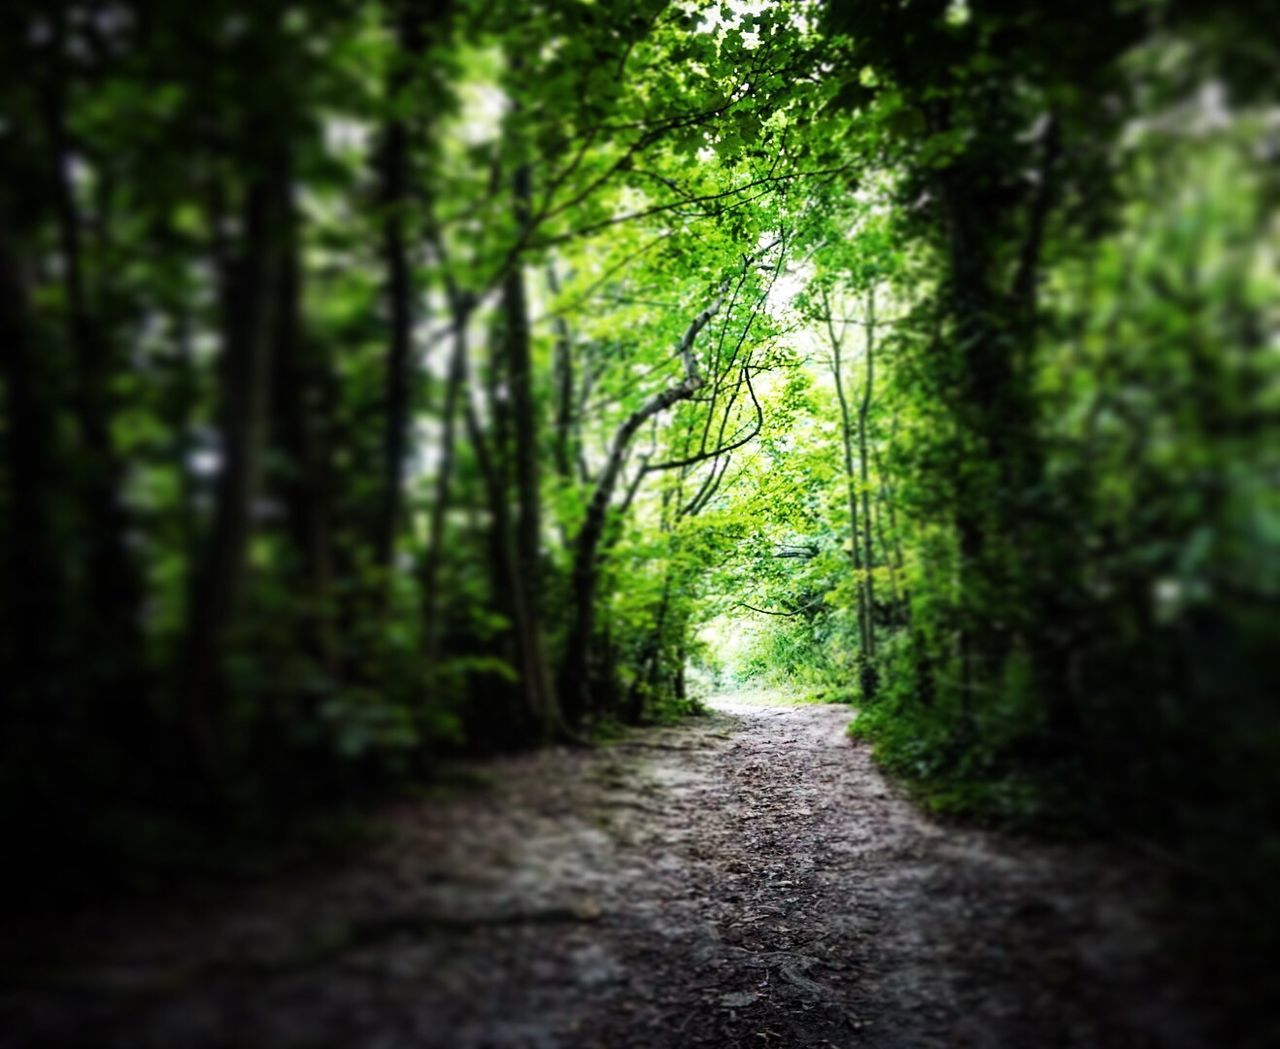 Through the woods Forest Tree The Way Forward Growth Tranquil Scene Tranquility Tree Trunk Nature WoodLand Non-urban Scene Scenics Beauty In Nature Footpath Day Diminishing Perspective Green Color Narrow Outdoors Cissburyring Worthing Sussex Downs Tiltshift